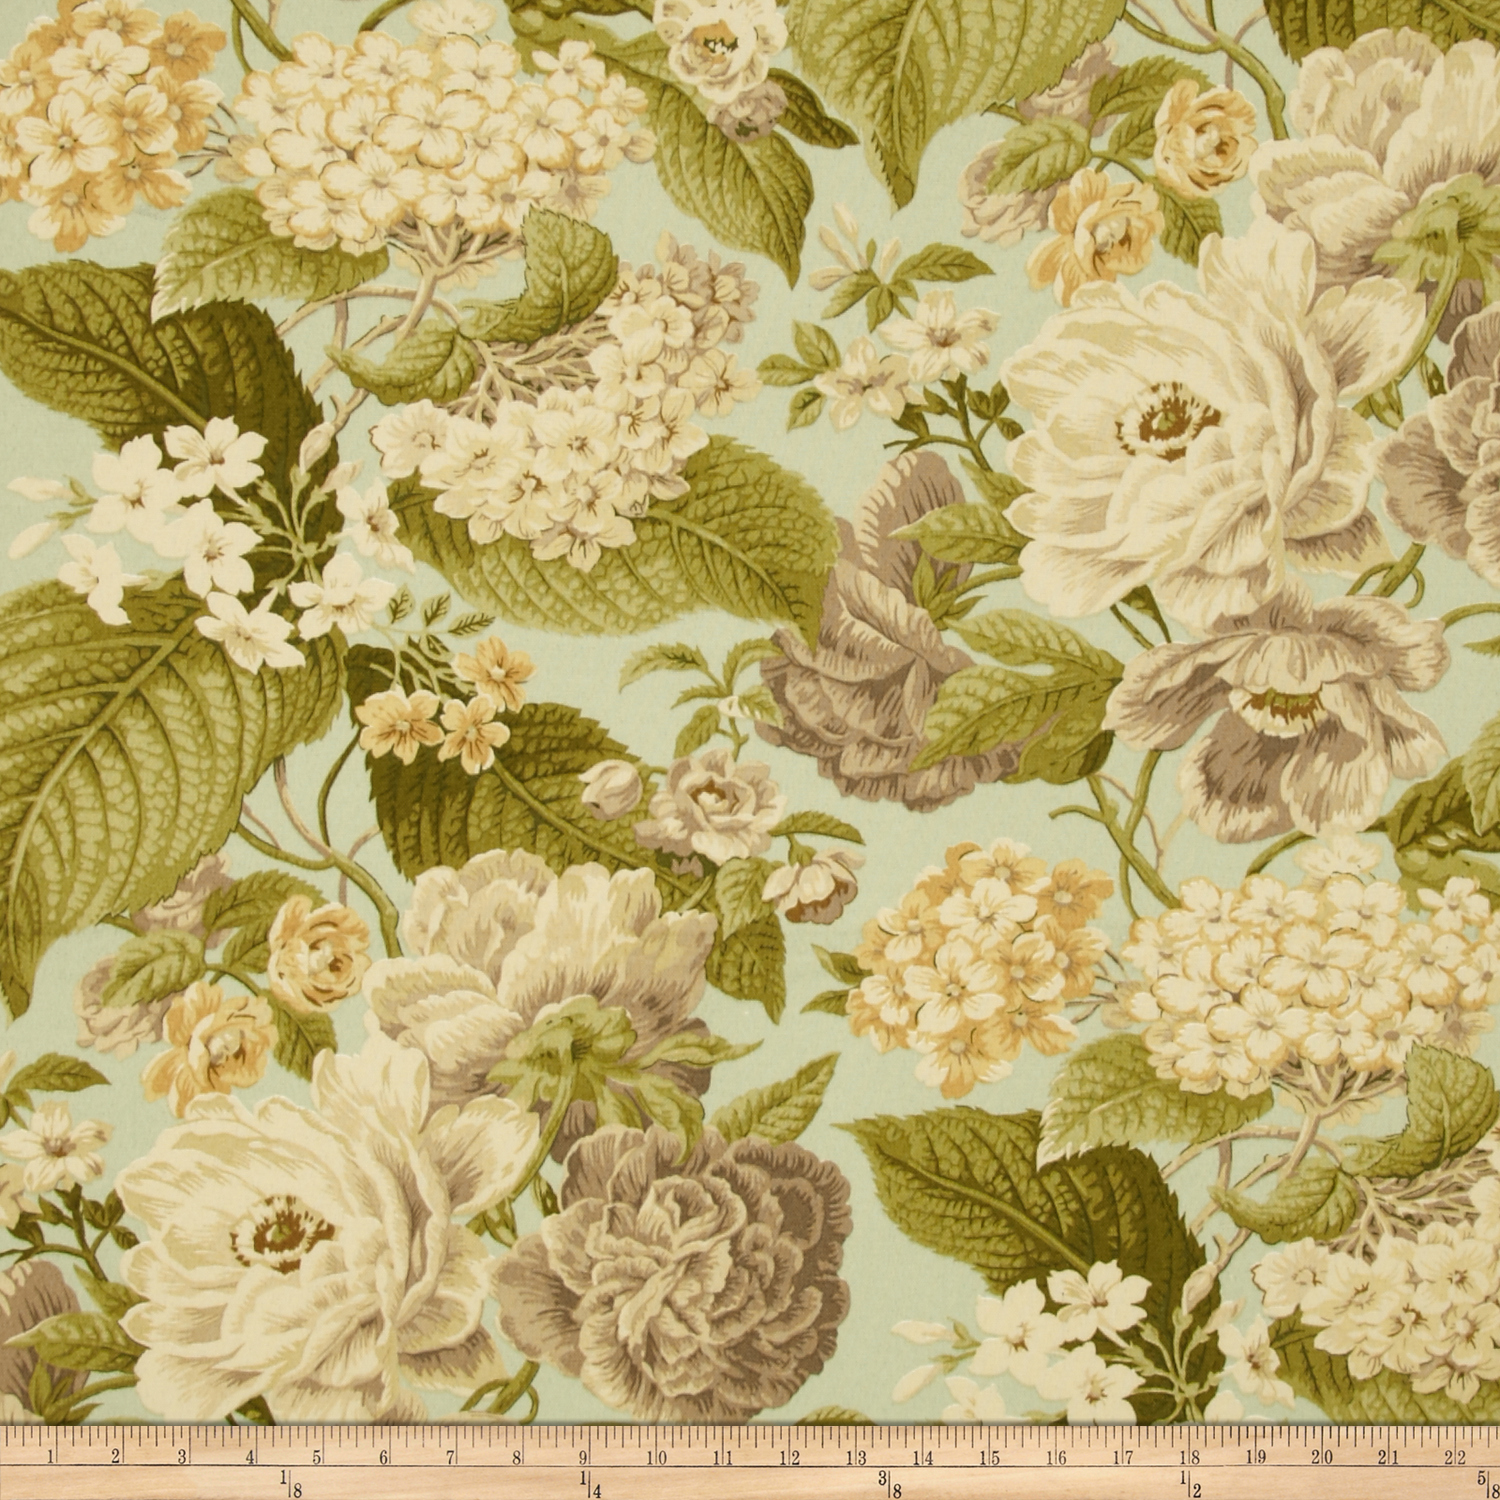 Tempo Indoor/Outdoor Floral Celadon Fabric by Tempro in USA